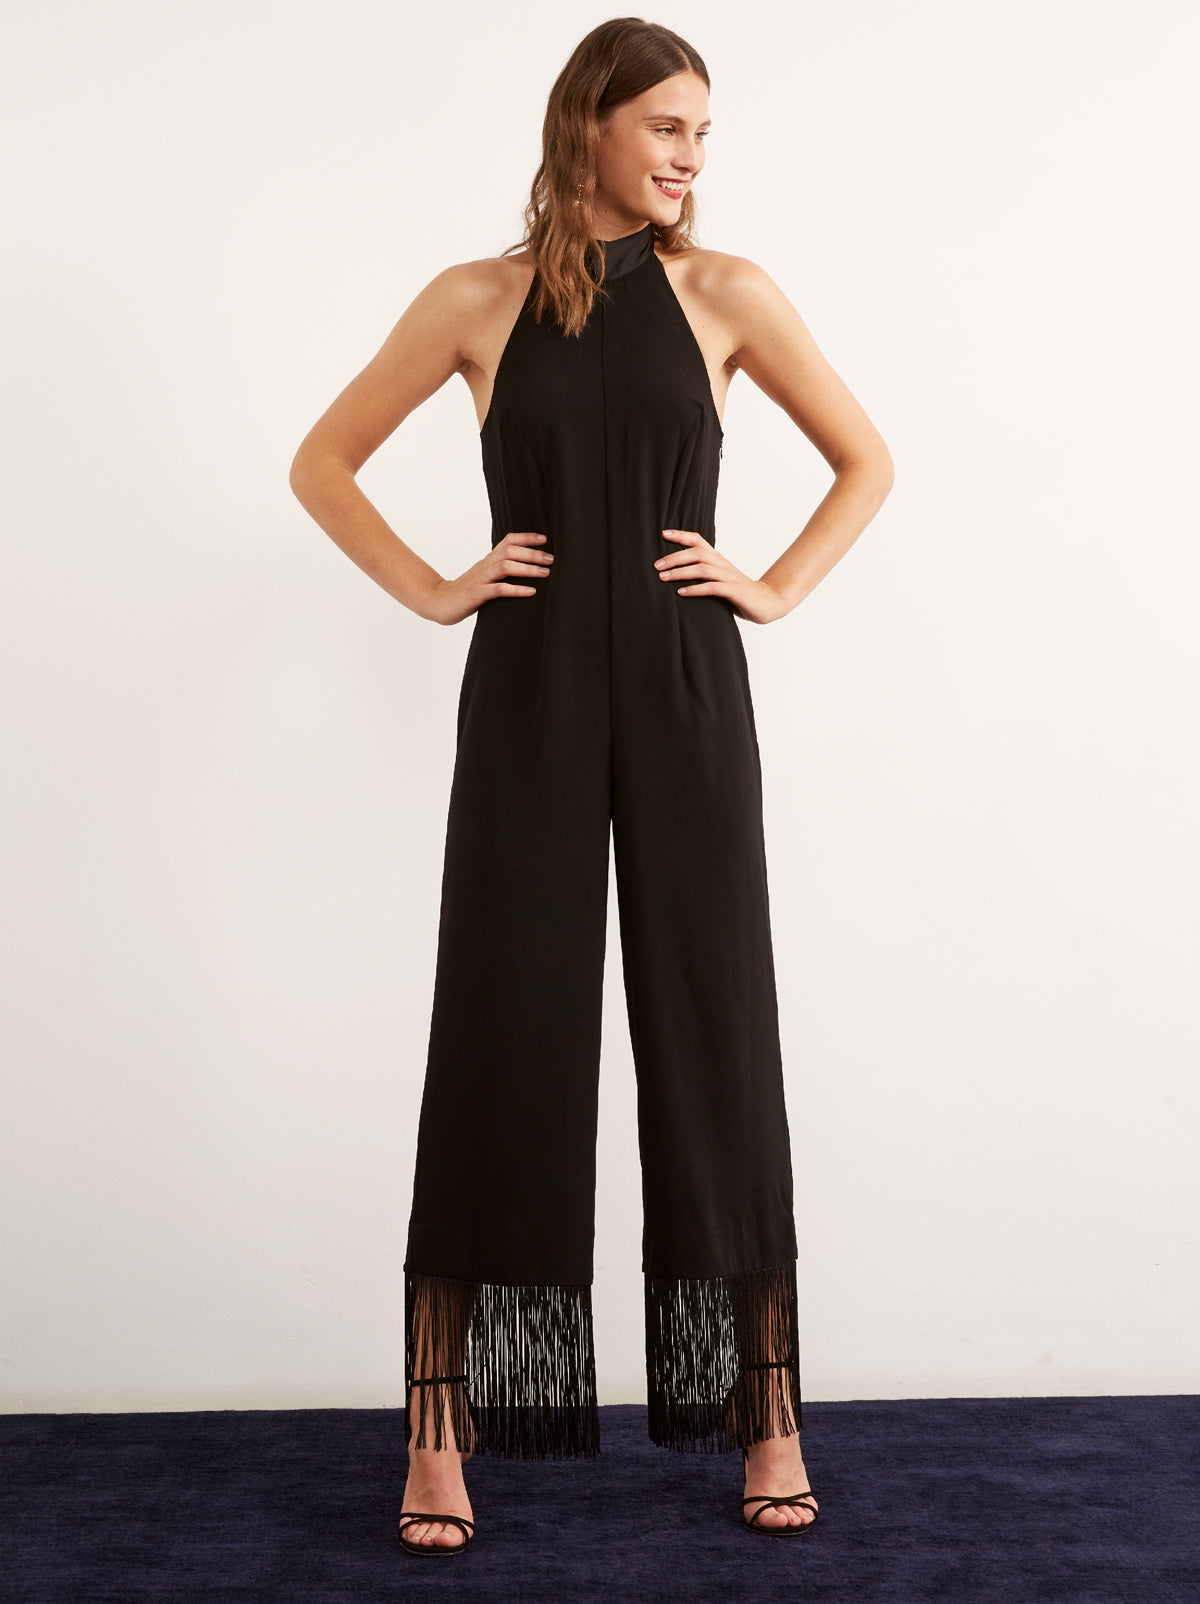 Nijinsky Black Wide Leg Tassel Jumpsuit by KITRI Studio